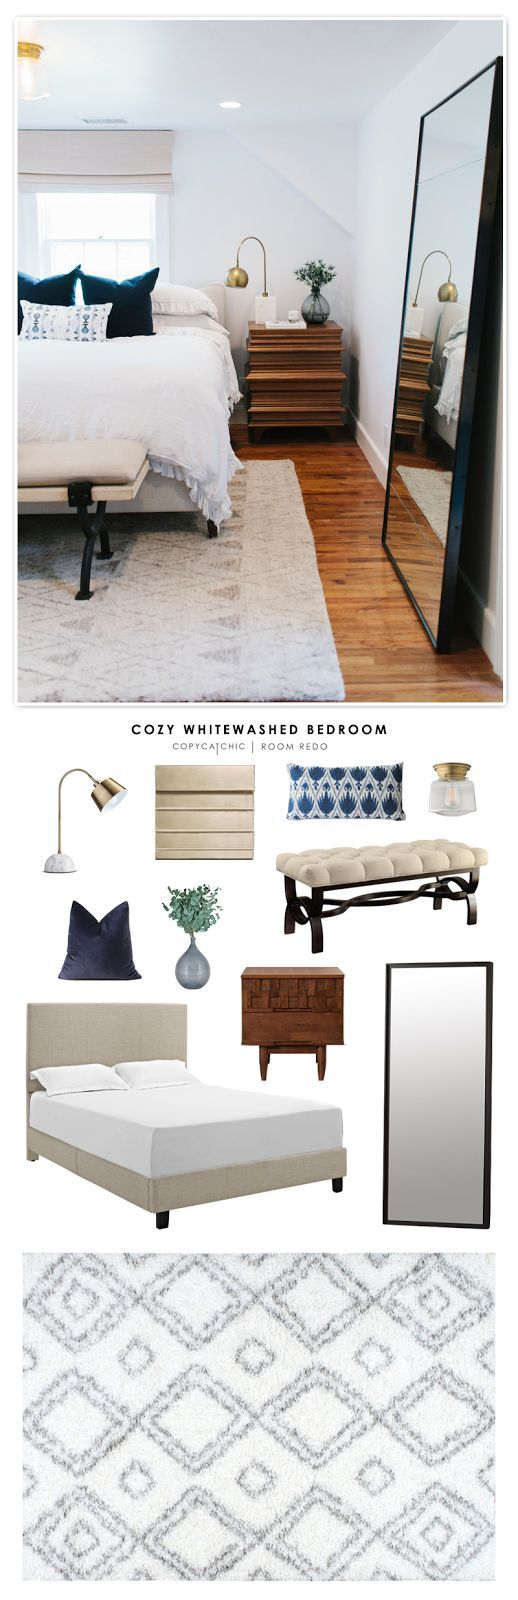 Copy Cat Chic Room Redo | Cozy Whitewashed Bedroom | | Copy Cat Chic | chic for cheap | Bloglovin'